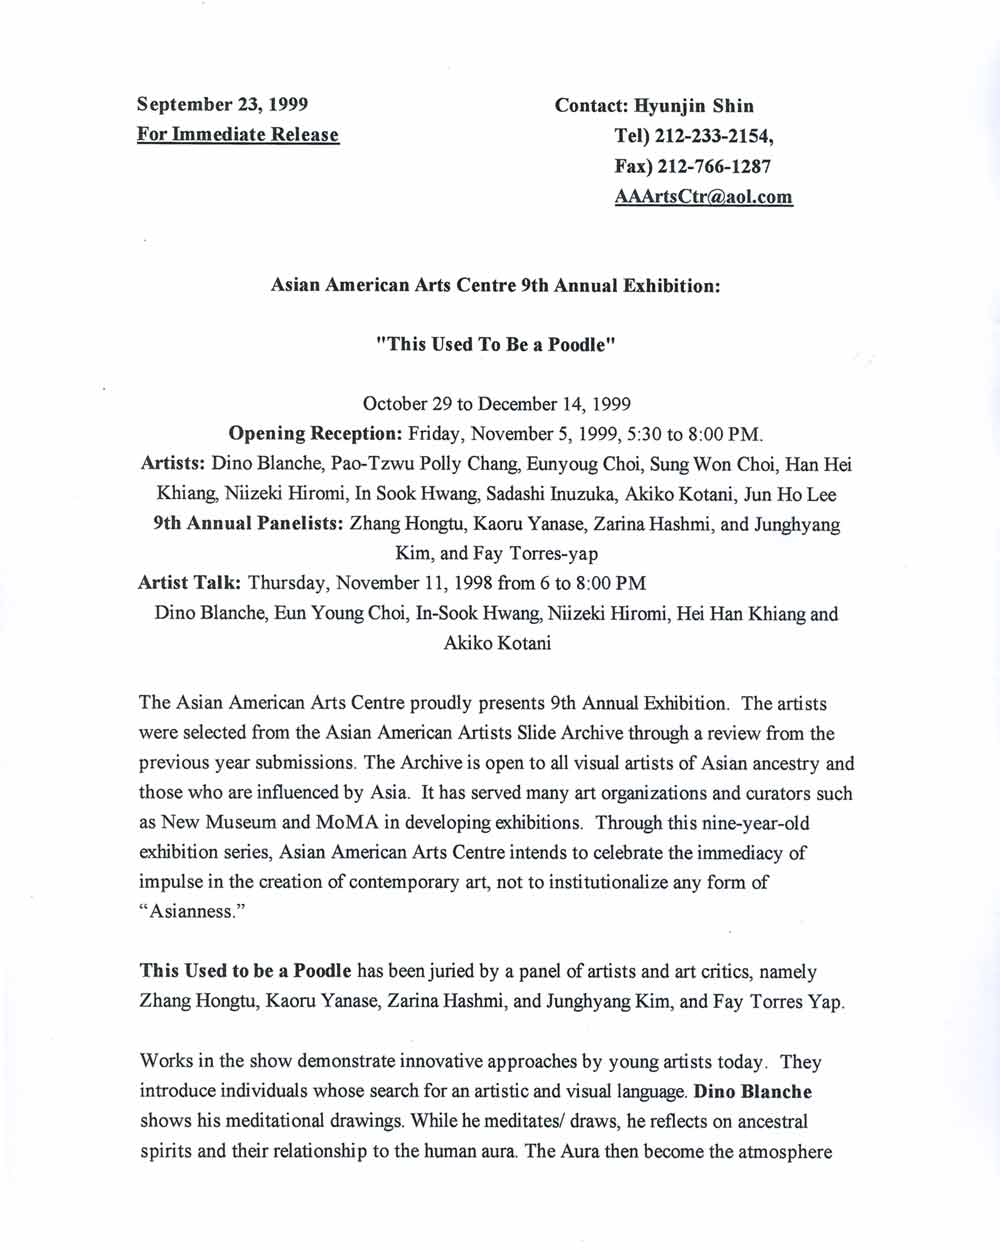 Poodle press release, pg 1